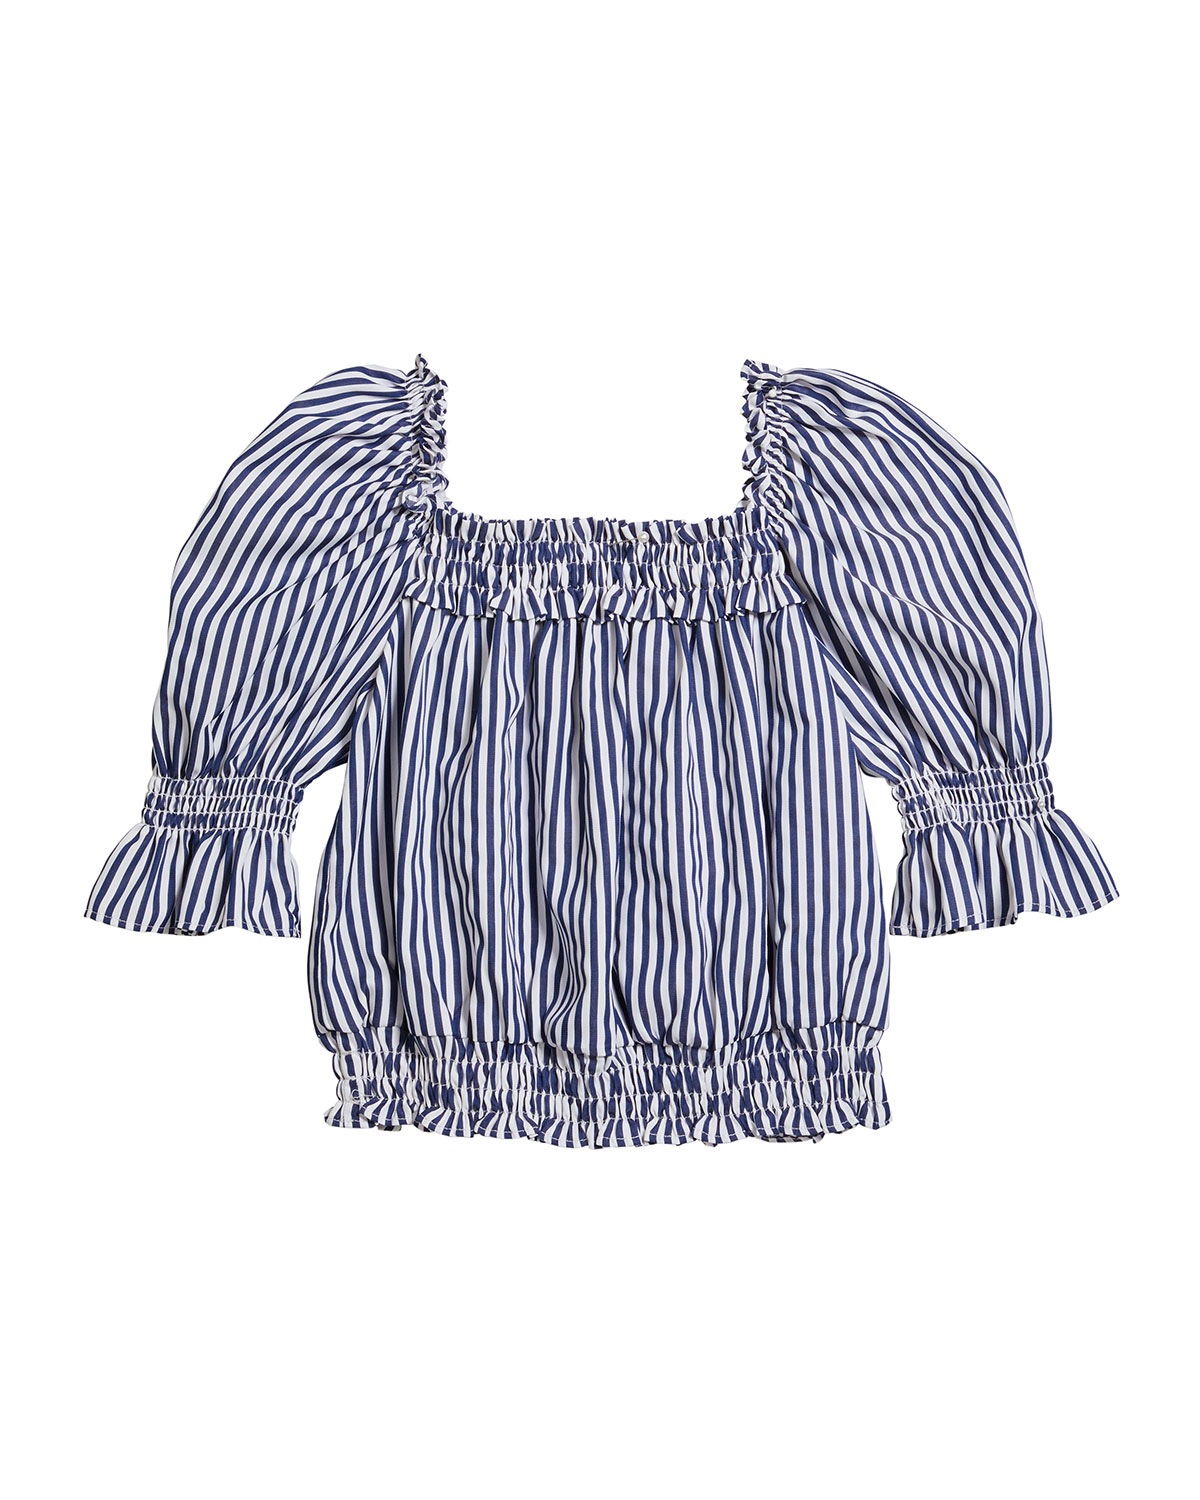 Habitual Girl's Striped Puff-Sleeve Top, Size 7-14